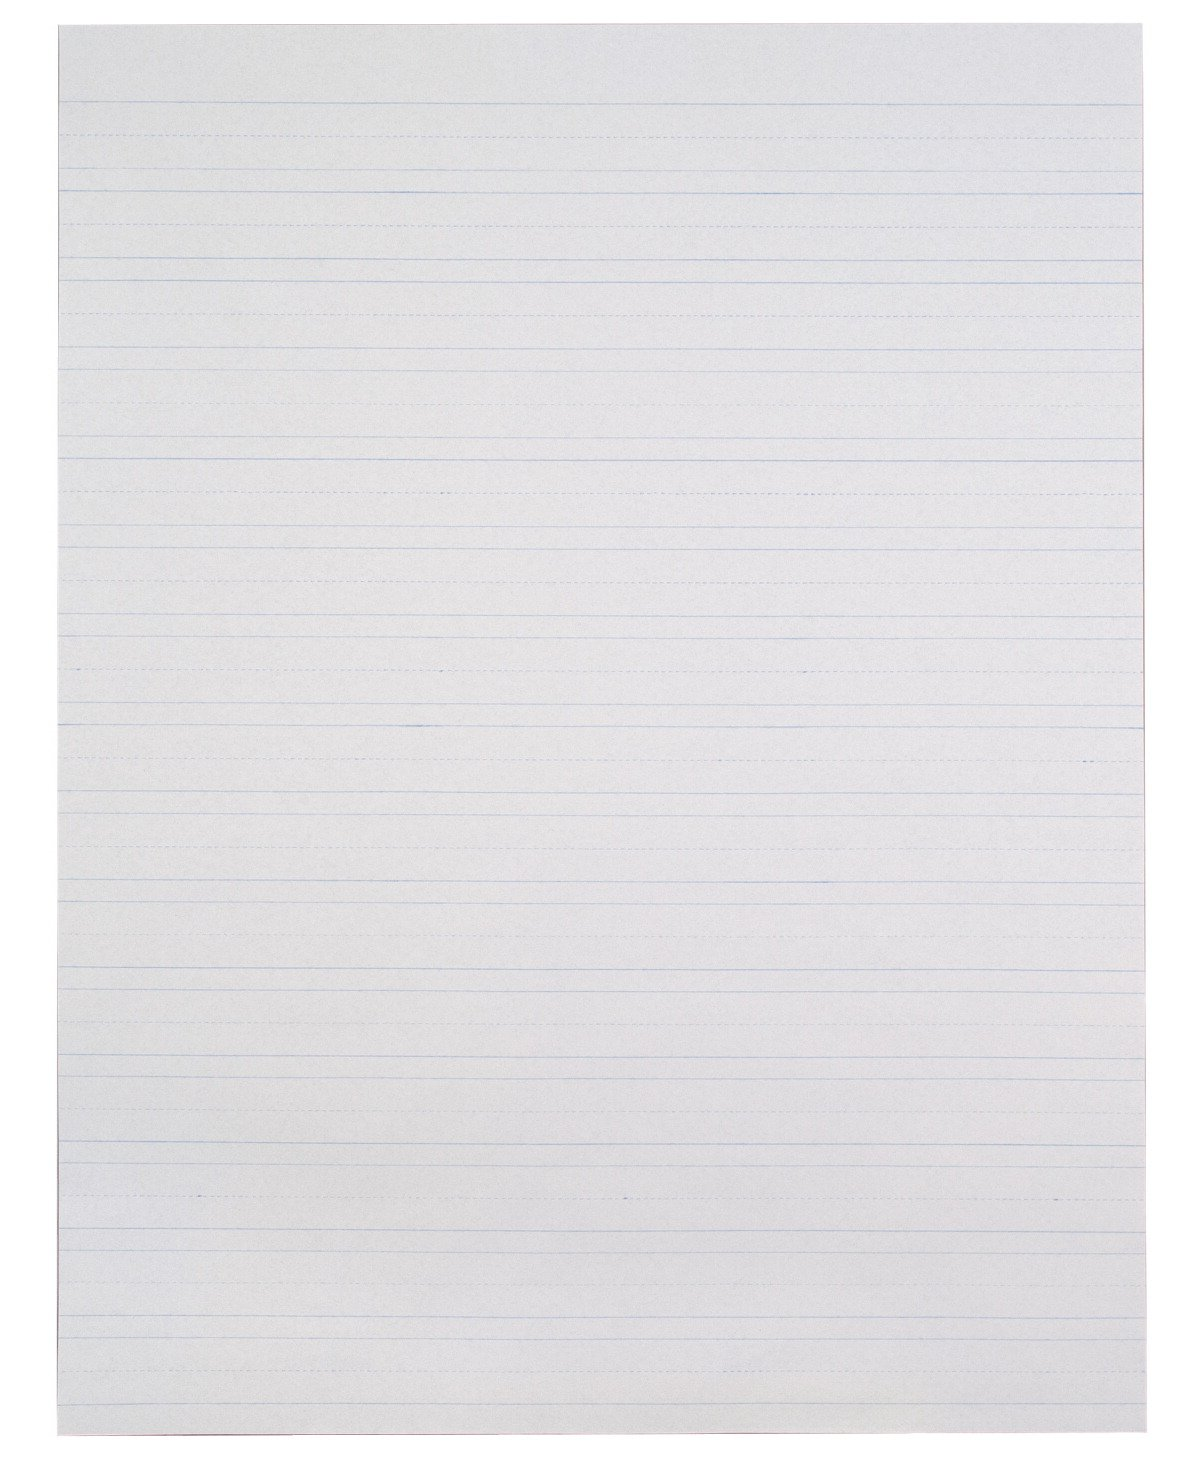 School Smart Primary Chart Paper, Skip-A-Line, 24 x 32 Inches, White, 500 Sheets by School Smart